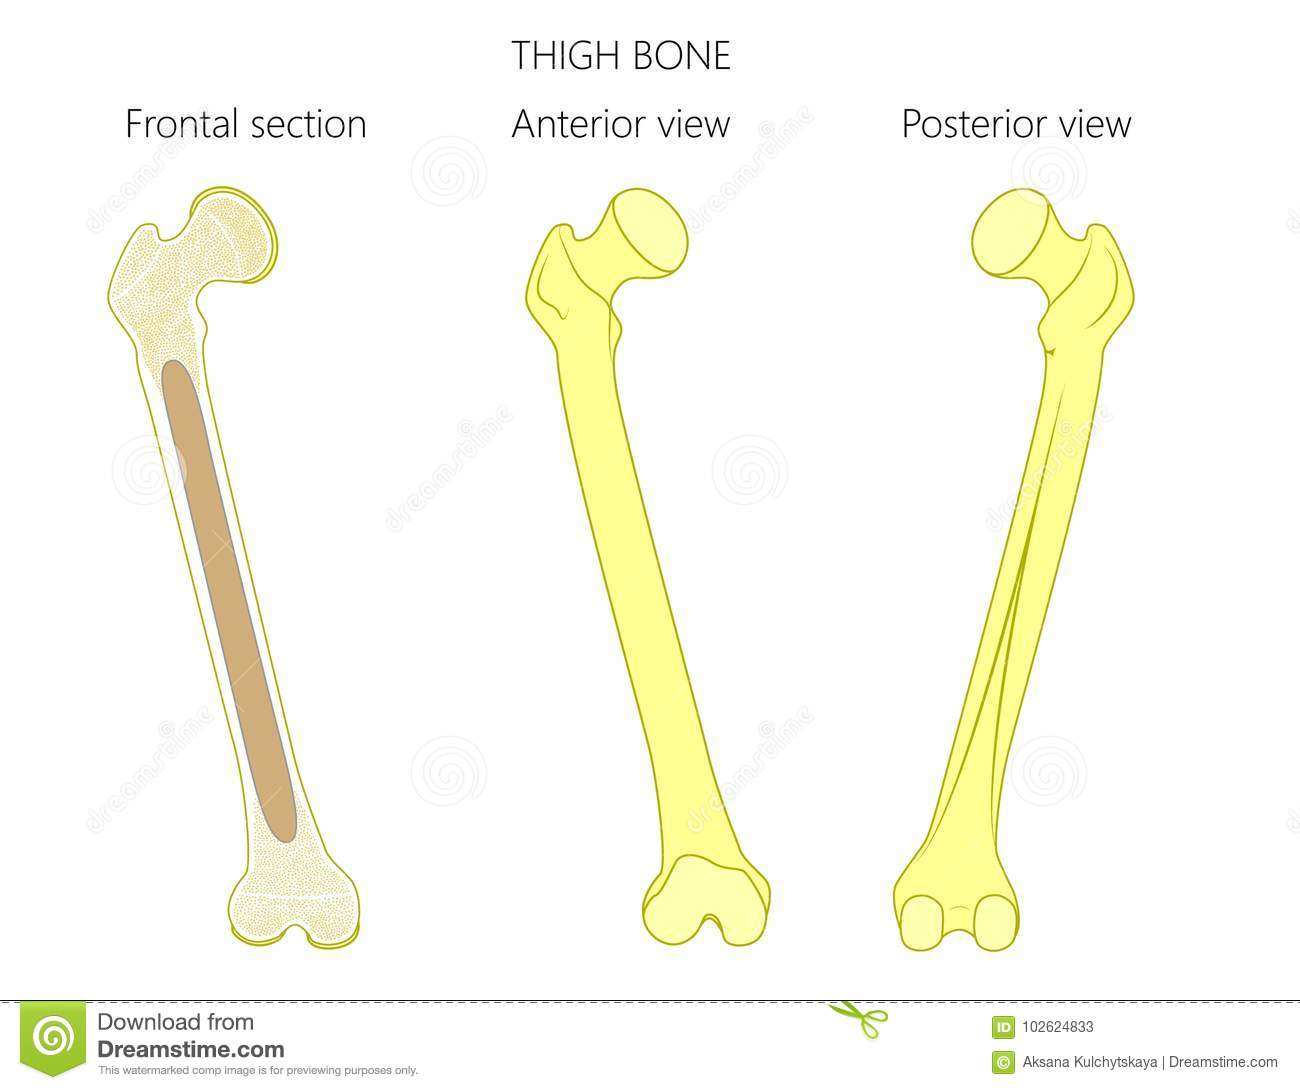 hight resolution of anatomy of a thigh bone tubular bone and spongy bone structure frontal section anterior and posterior view for advertising and medical publications